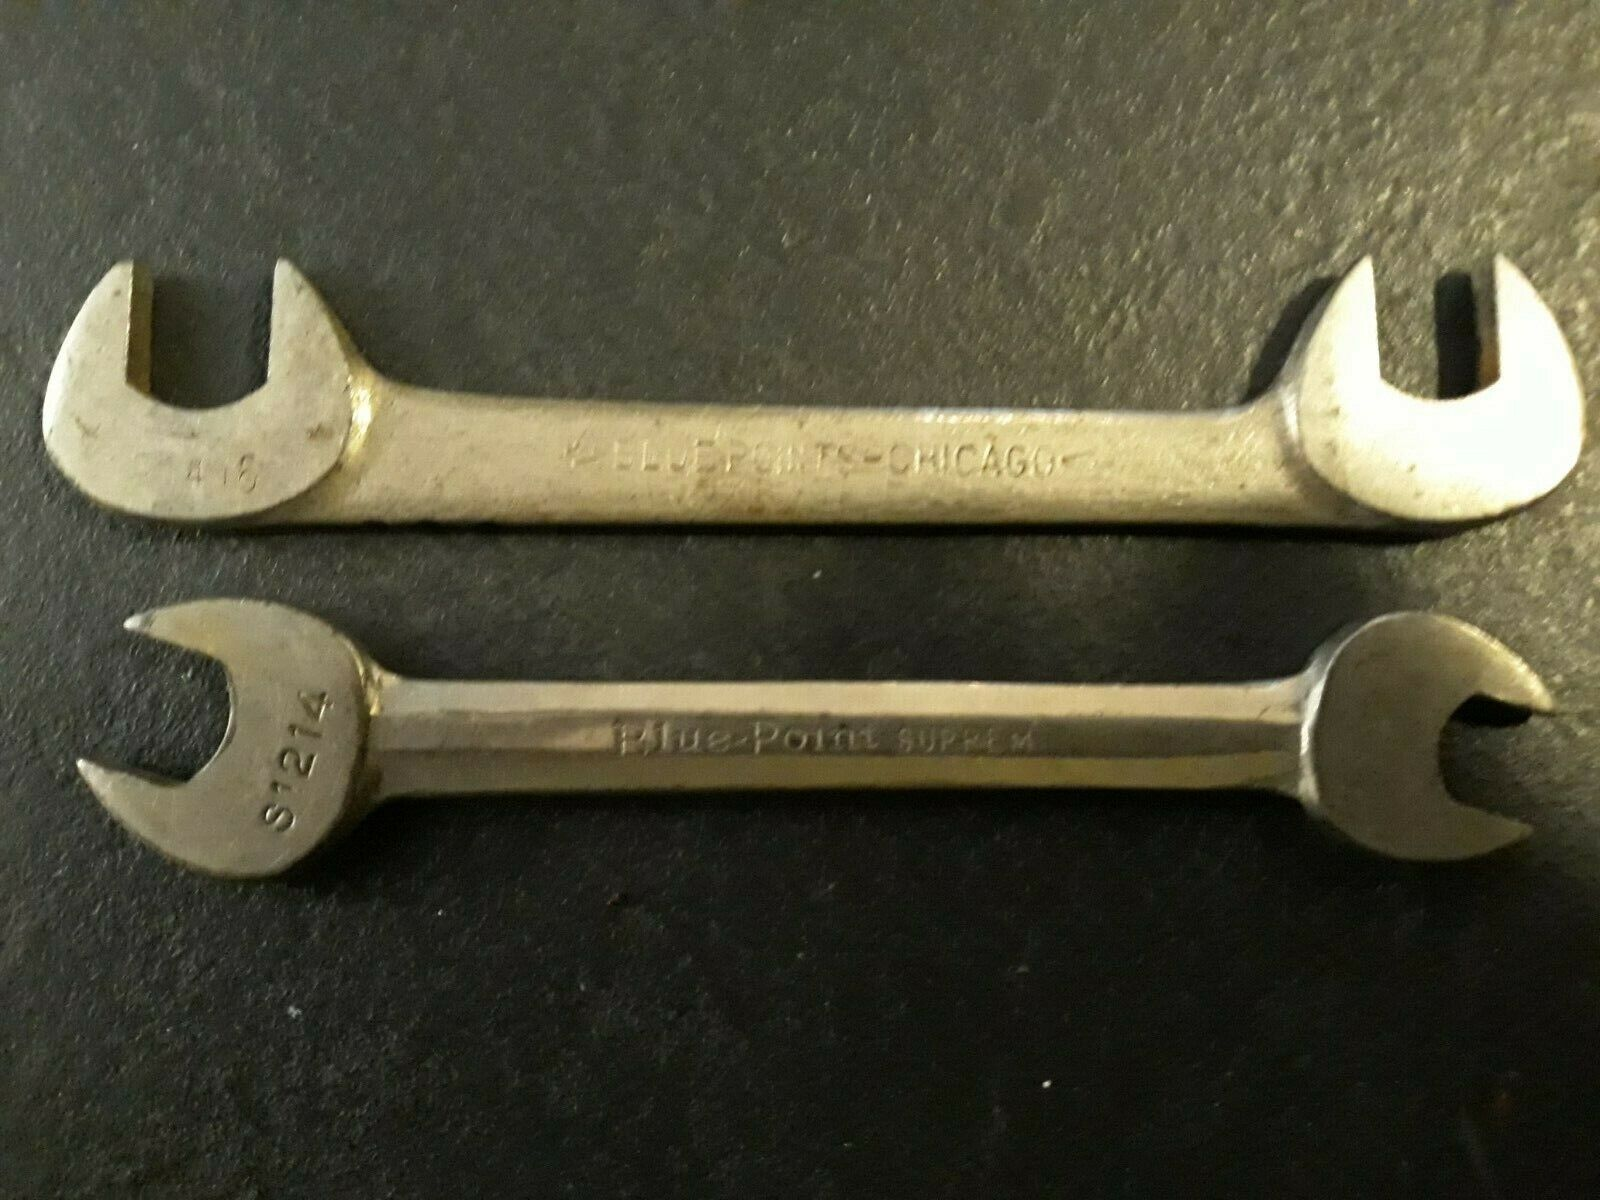 vintage blue point wrenches R1416 and S1214